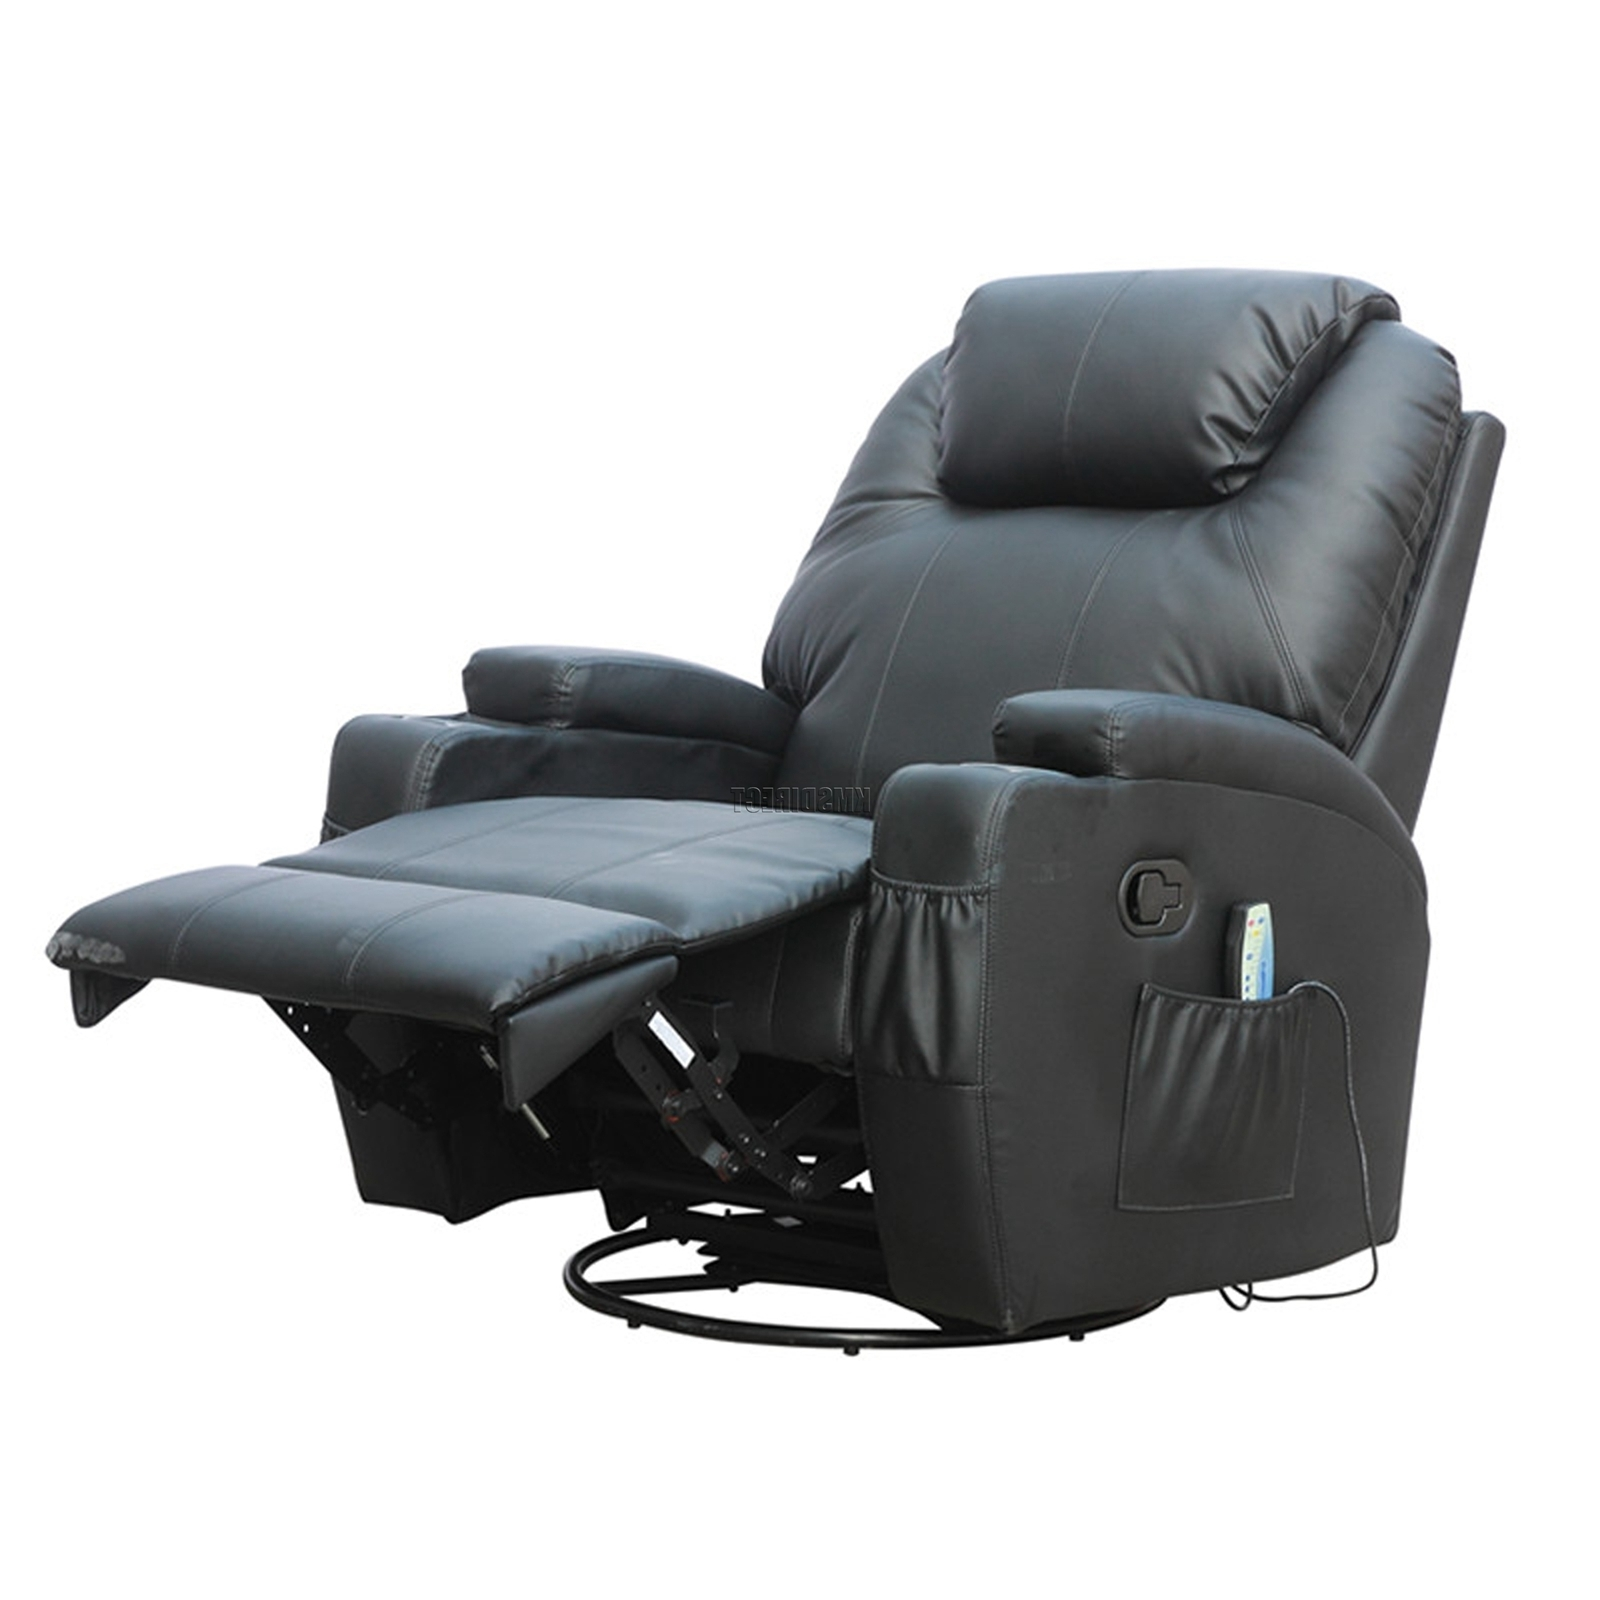 Trendy Rocking Sofa Chairs Throughout Foxhunter Bonded Leather Sofa Massage Recliner Chair Swivel (View 13 of 15)